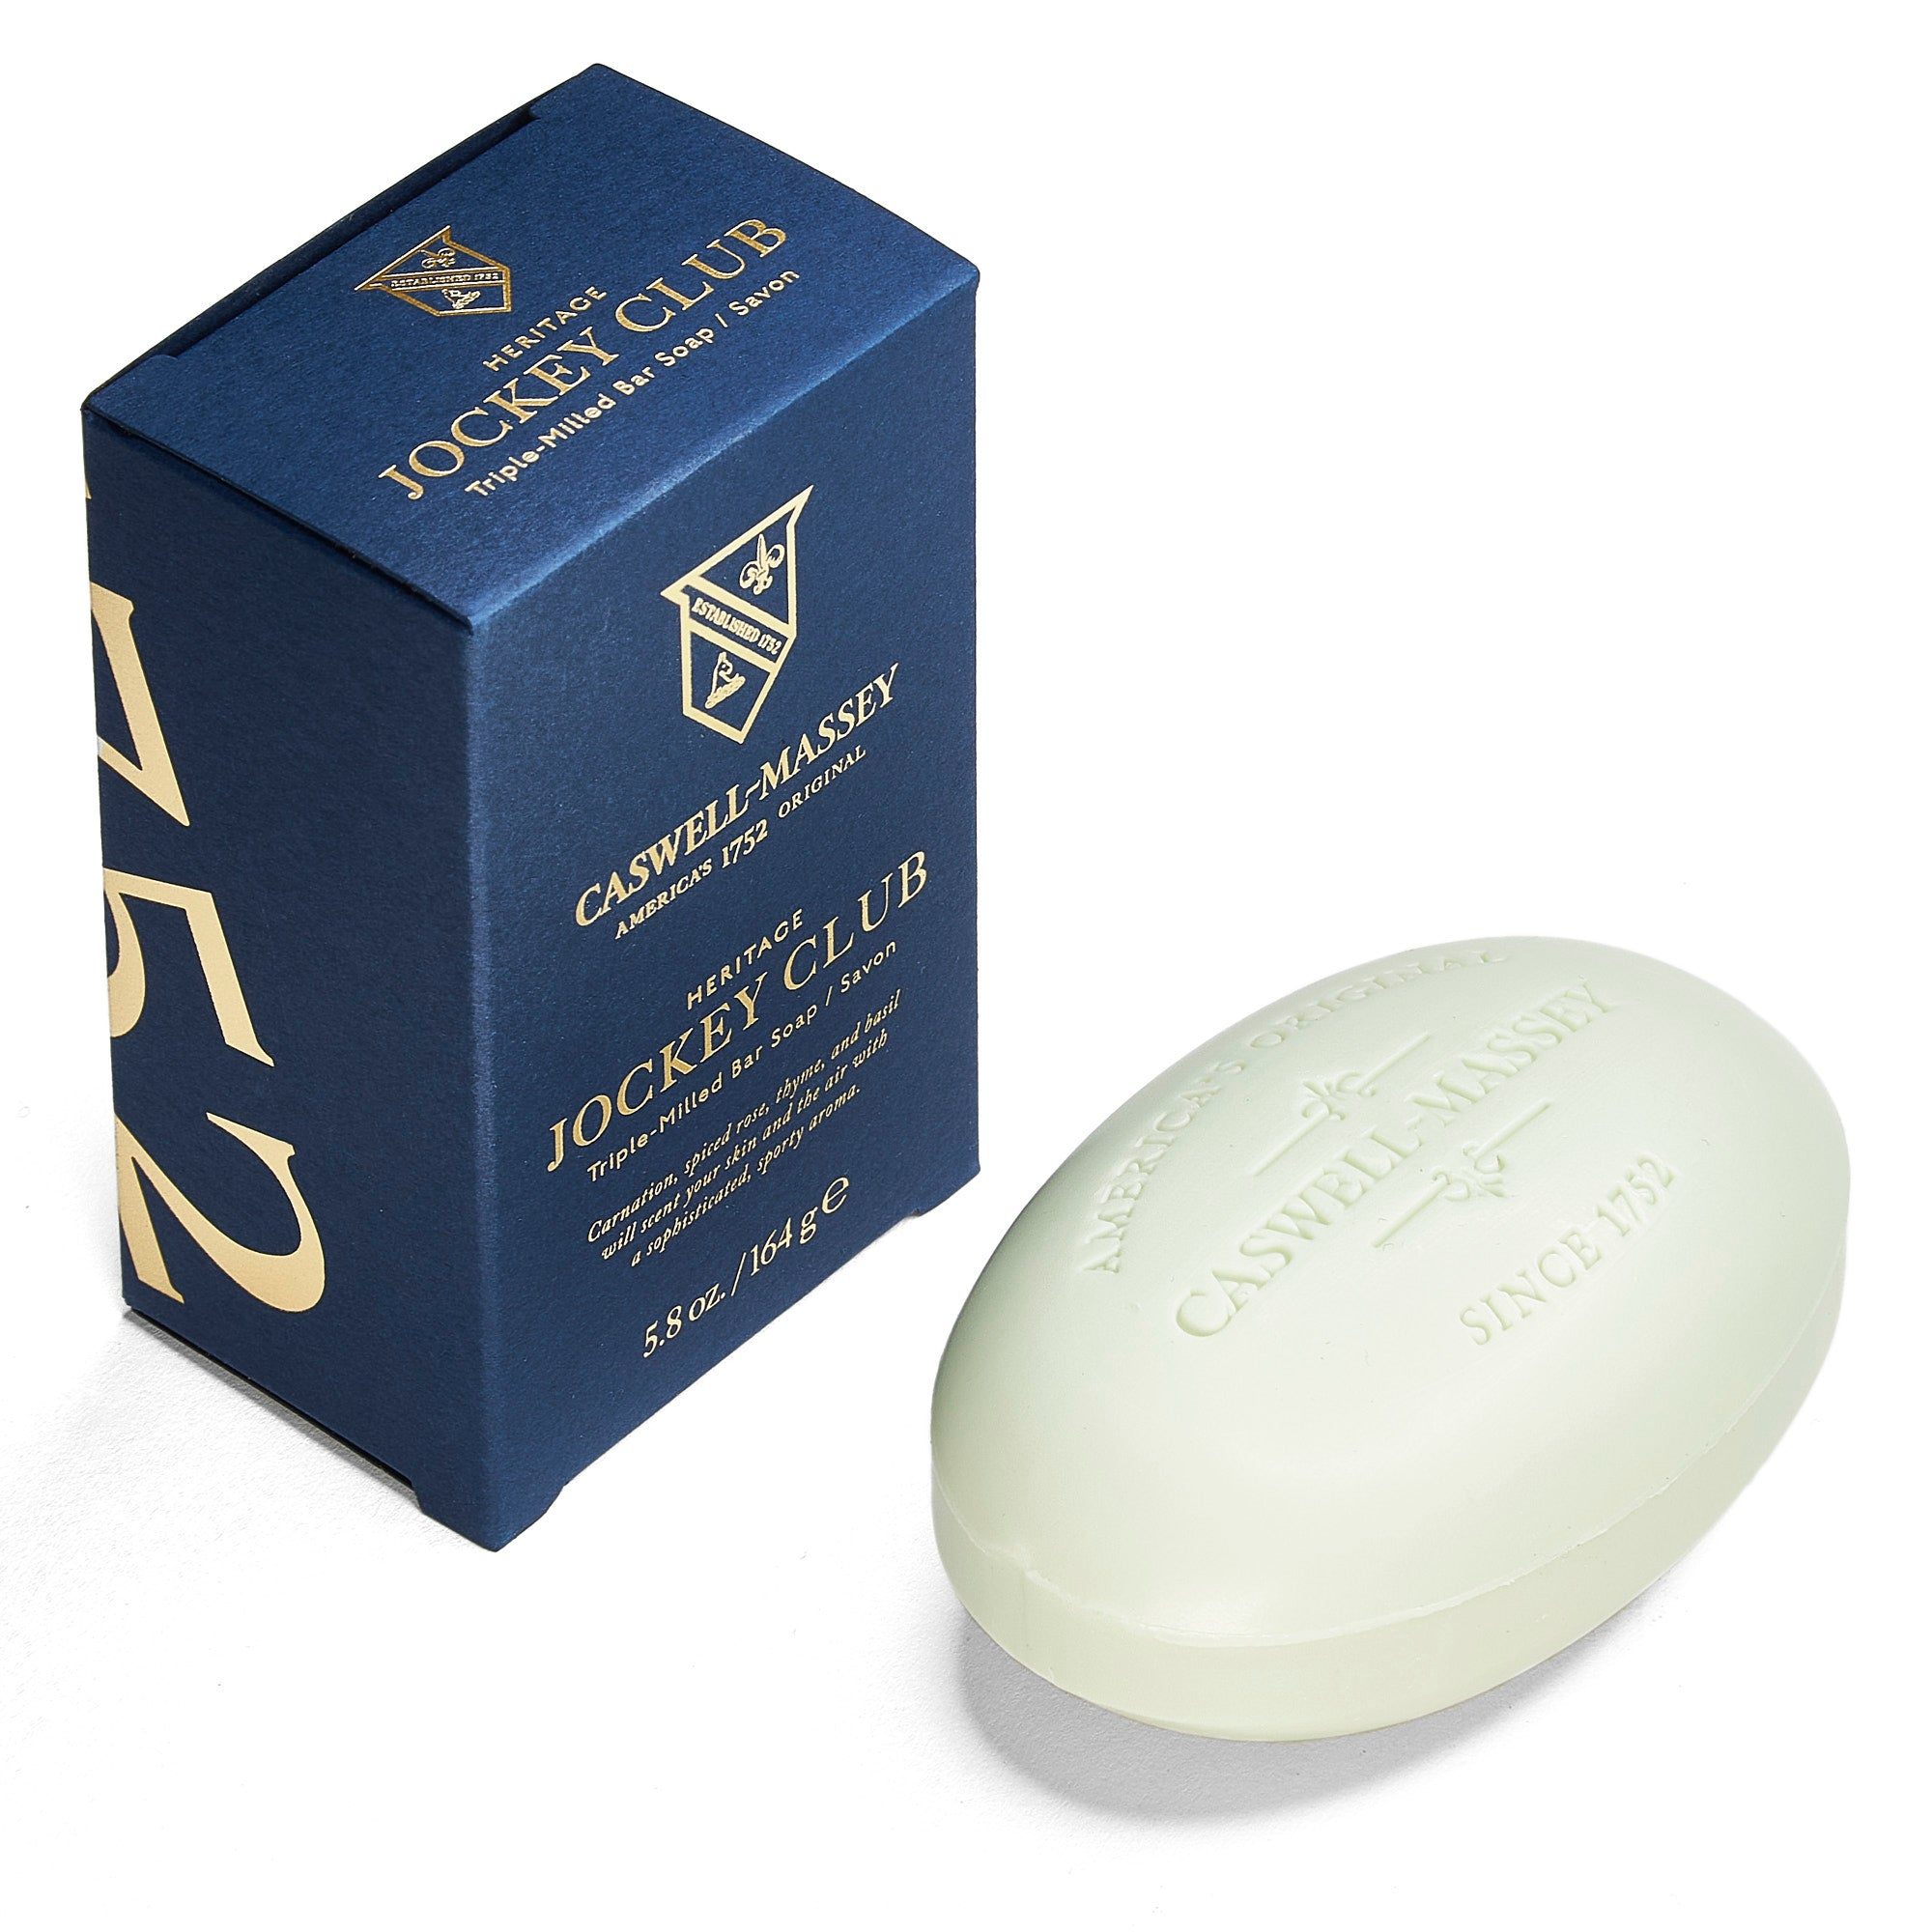 Heritage Jockey Club Bar Soap